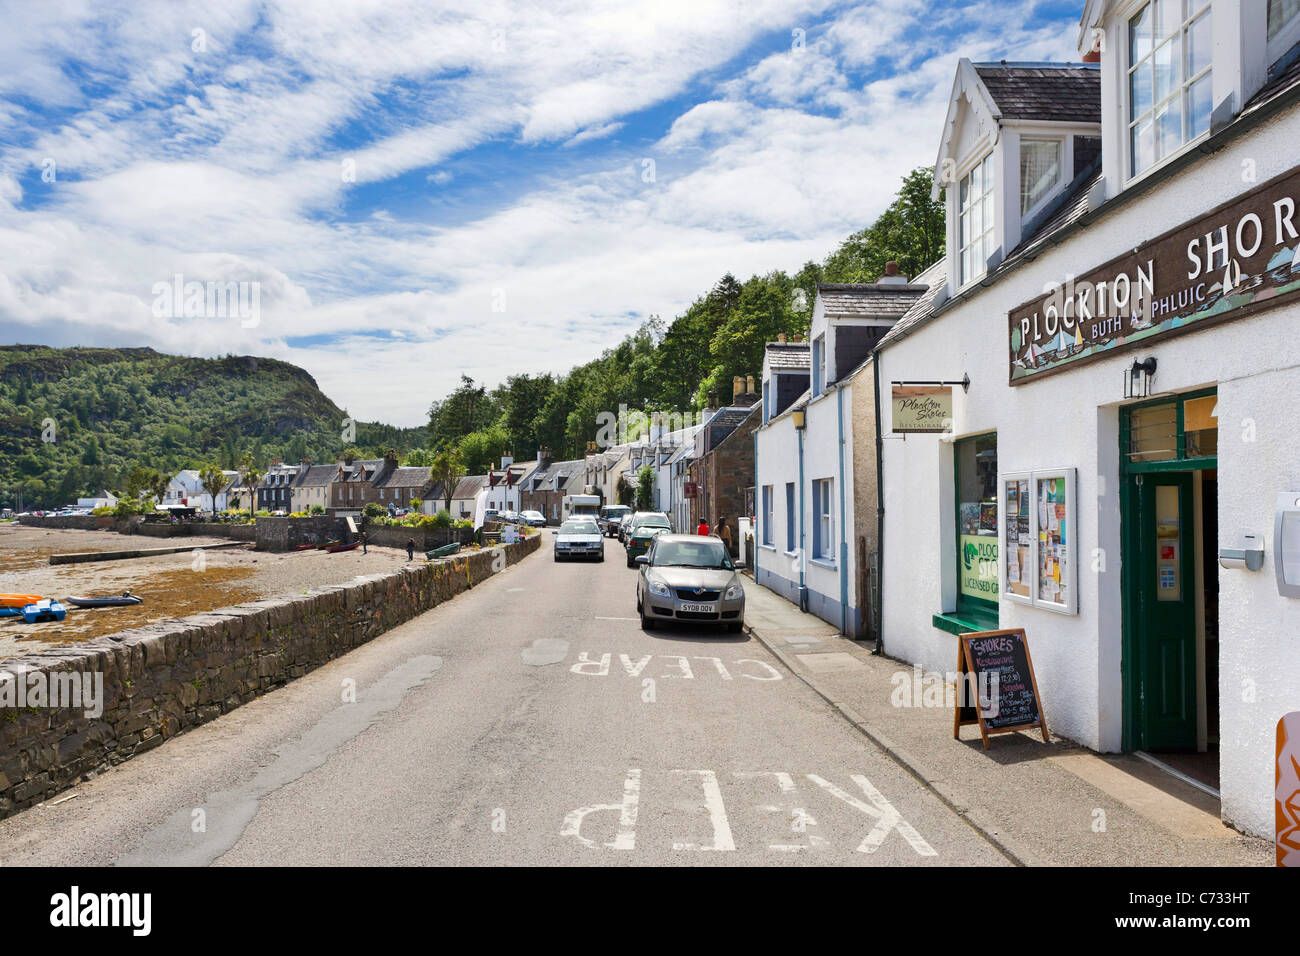 Village store on the main street through the centre of the picturesque village of Plockton, Highland, Scotland, - Stock Image